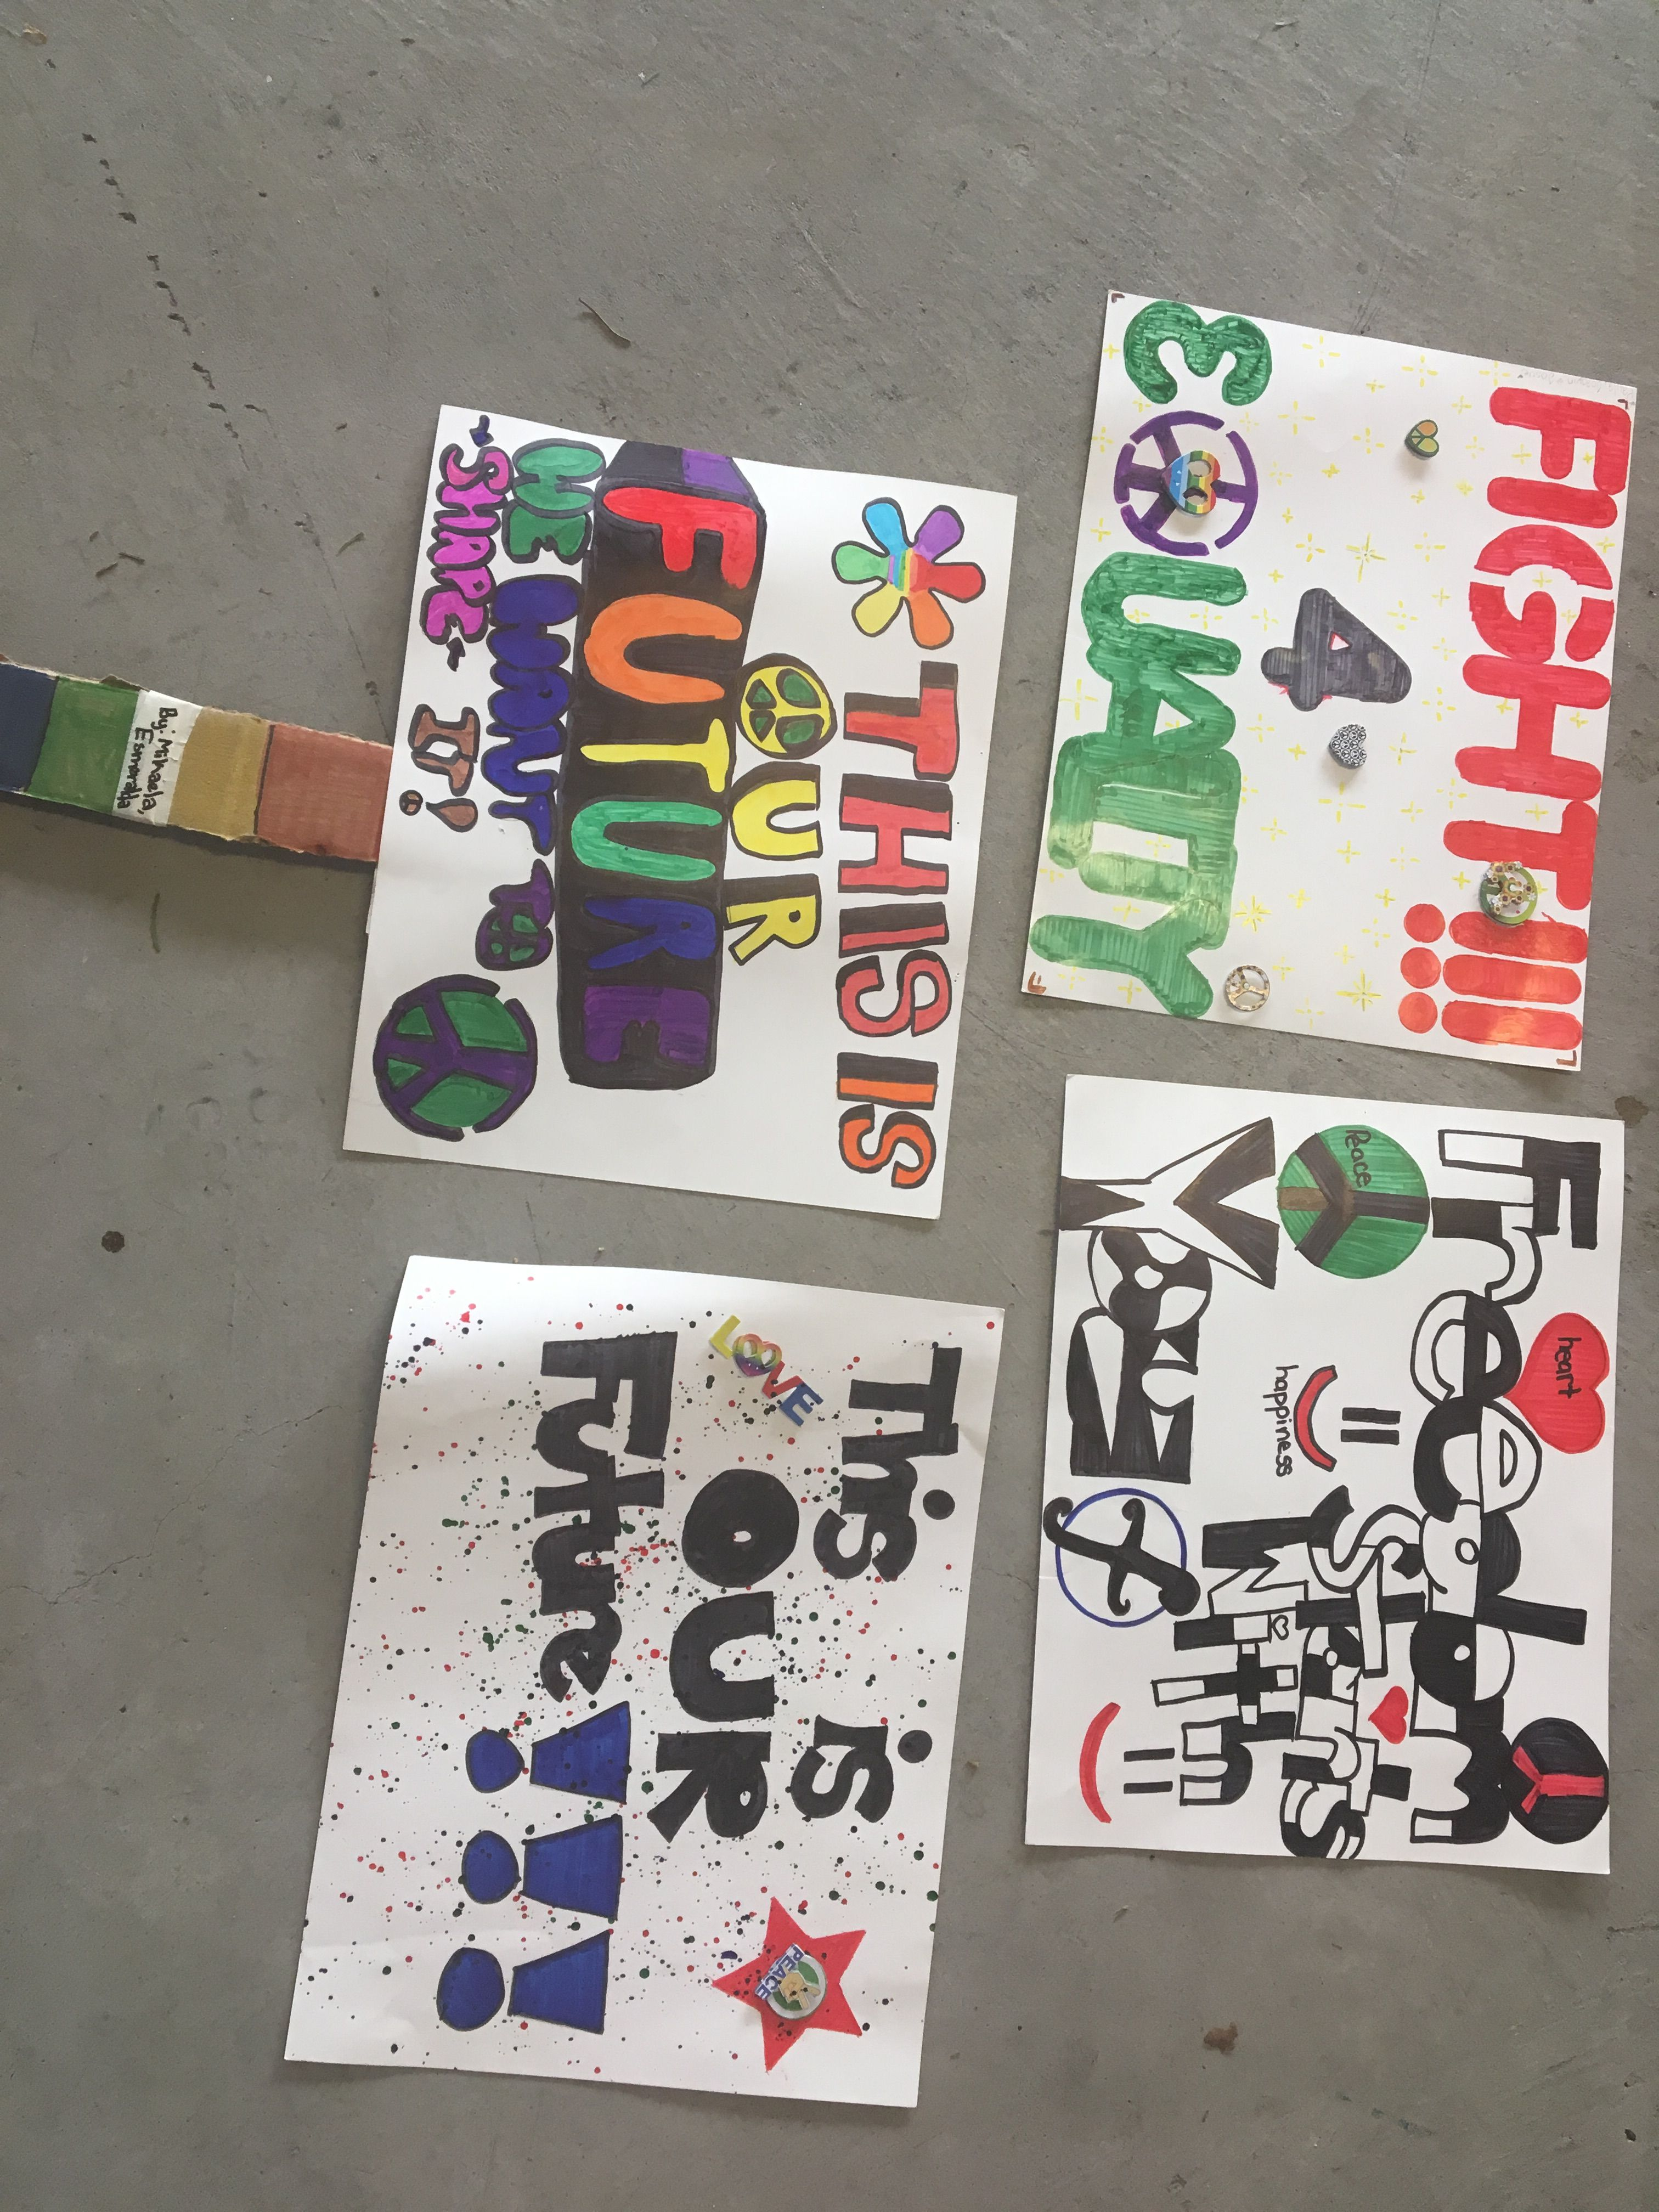 Pin By Lani Hernandez On Civil Rights Protest Signs